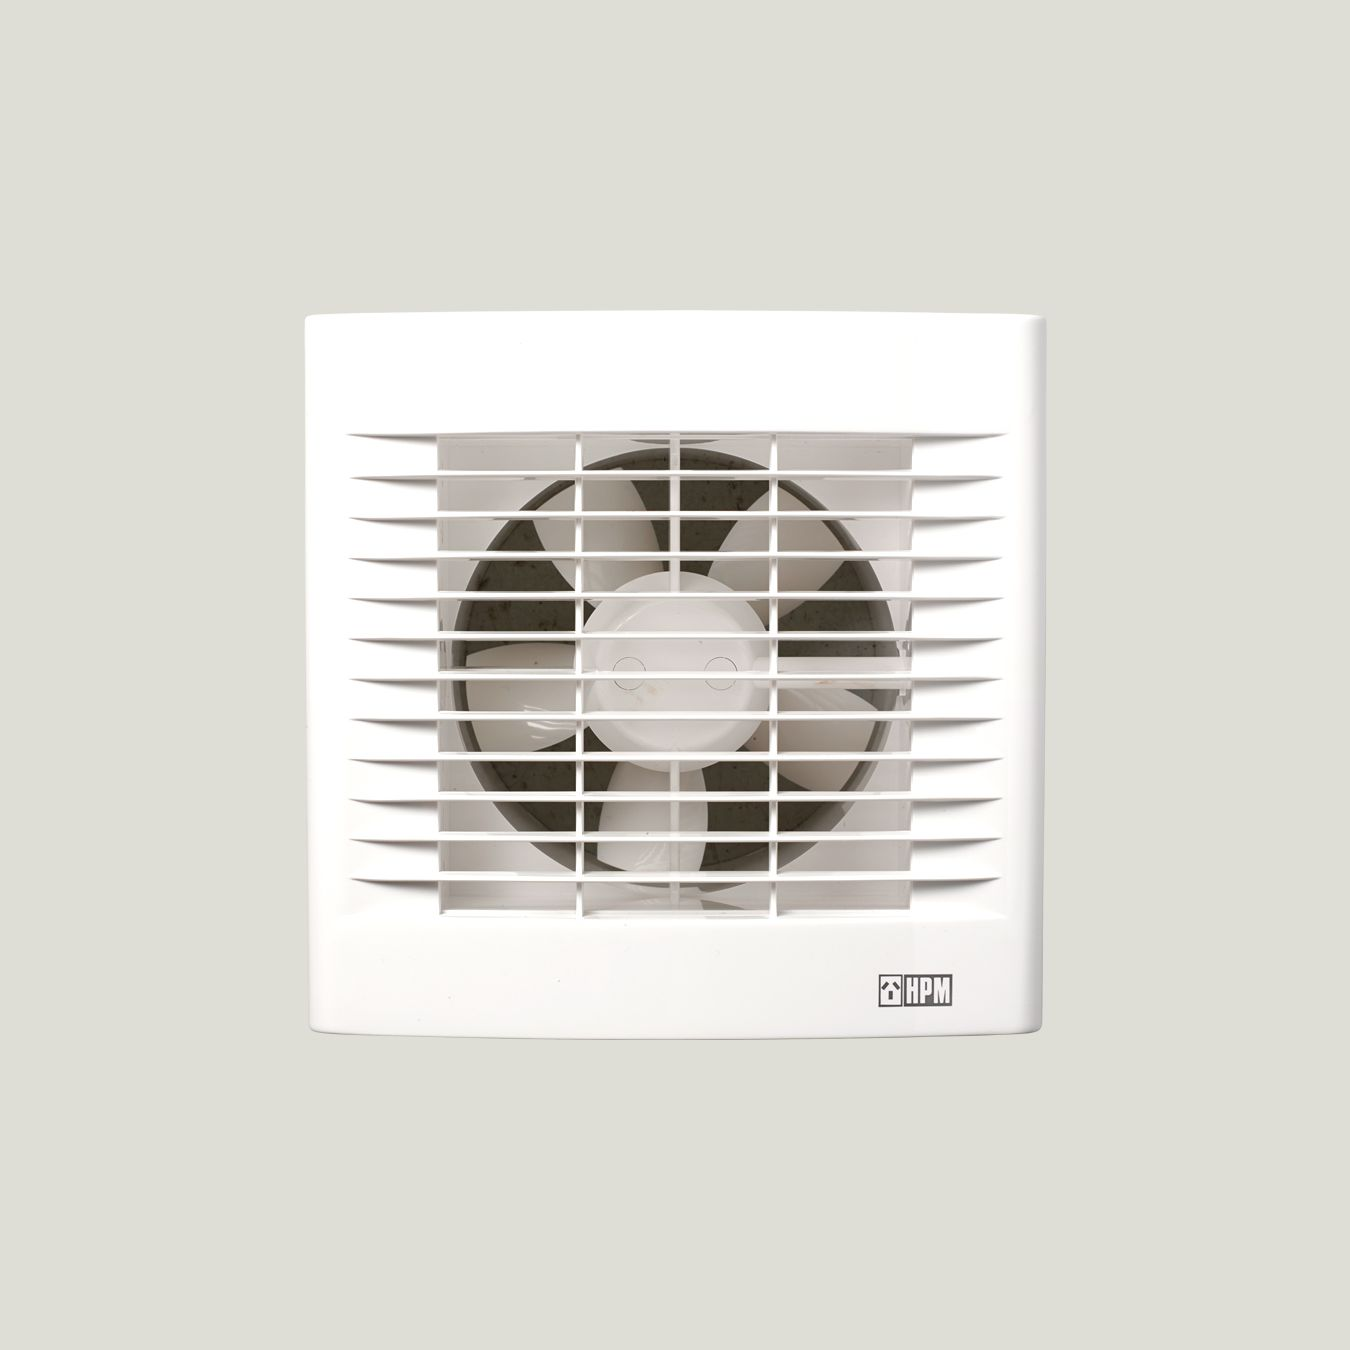 Exhaust Fans Window Exhaust Fans Ceiling Exhaust Fans And Wall Exhaust Fan Mail